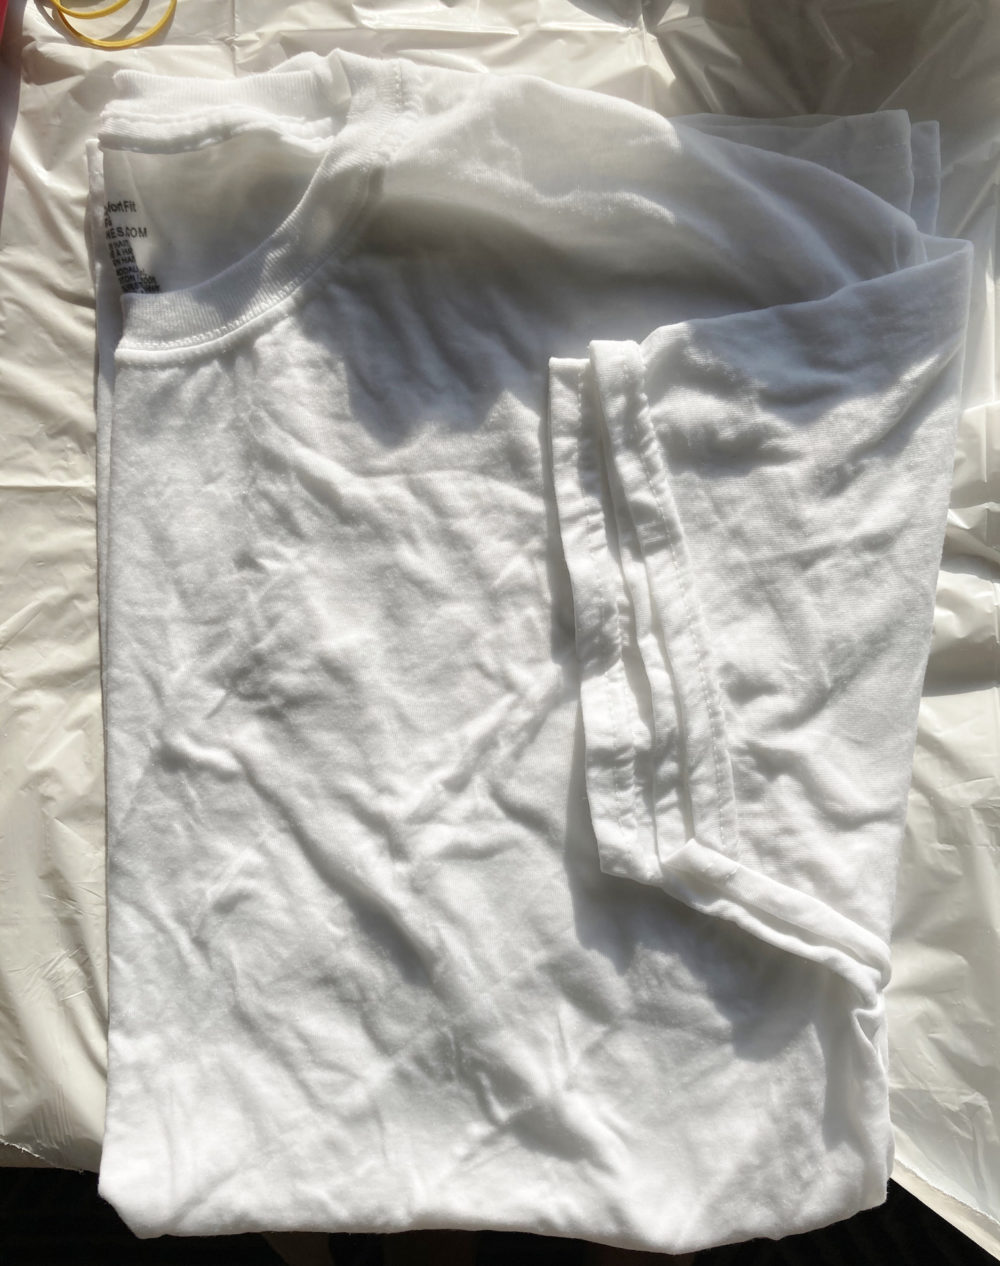 A folded white t-shirt for a piece on how to tie-dye at home